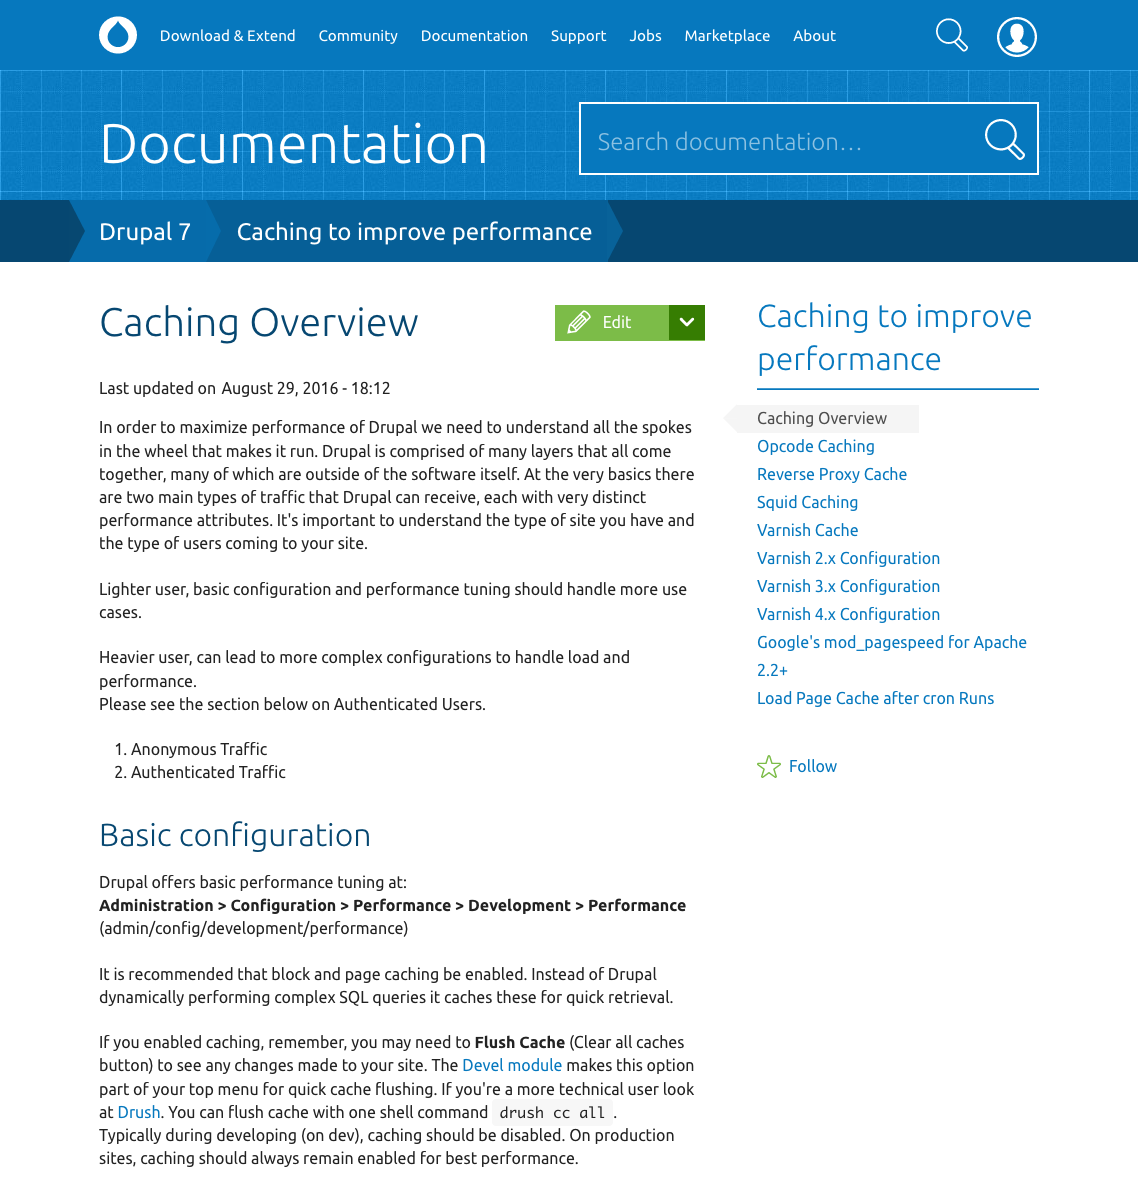 Documentation page screenshot